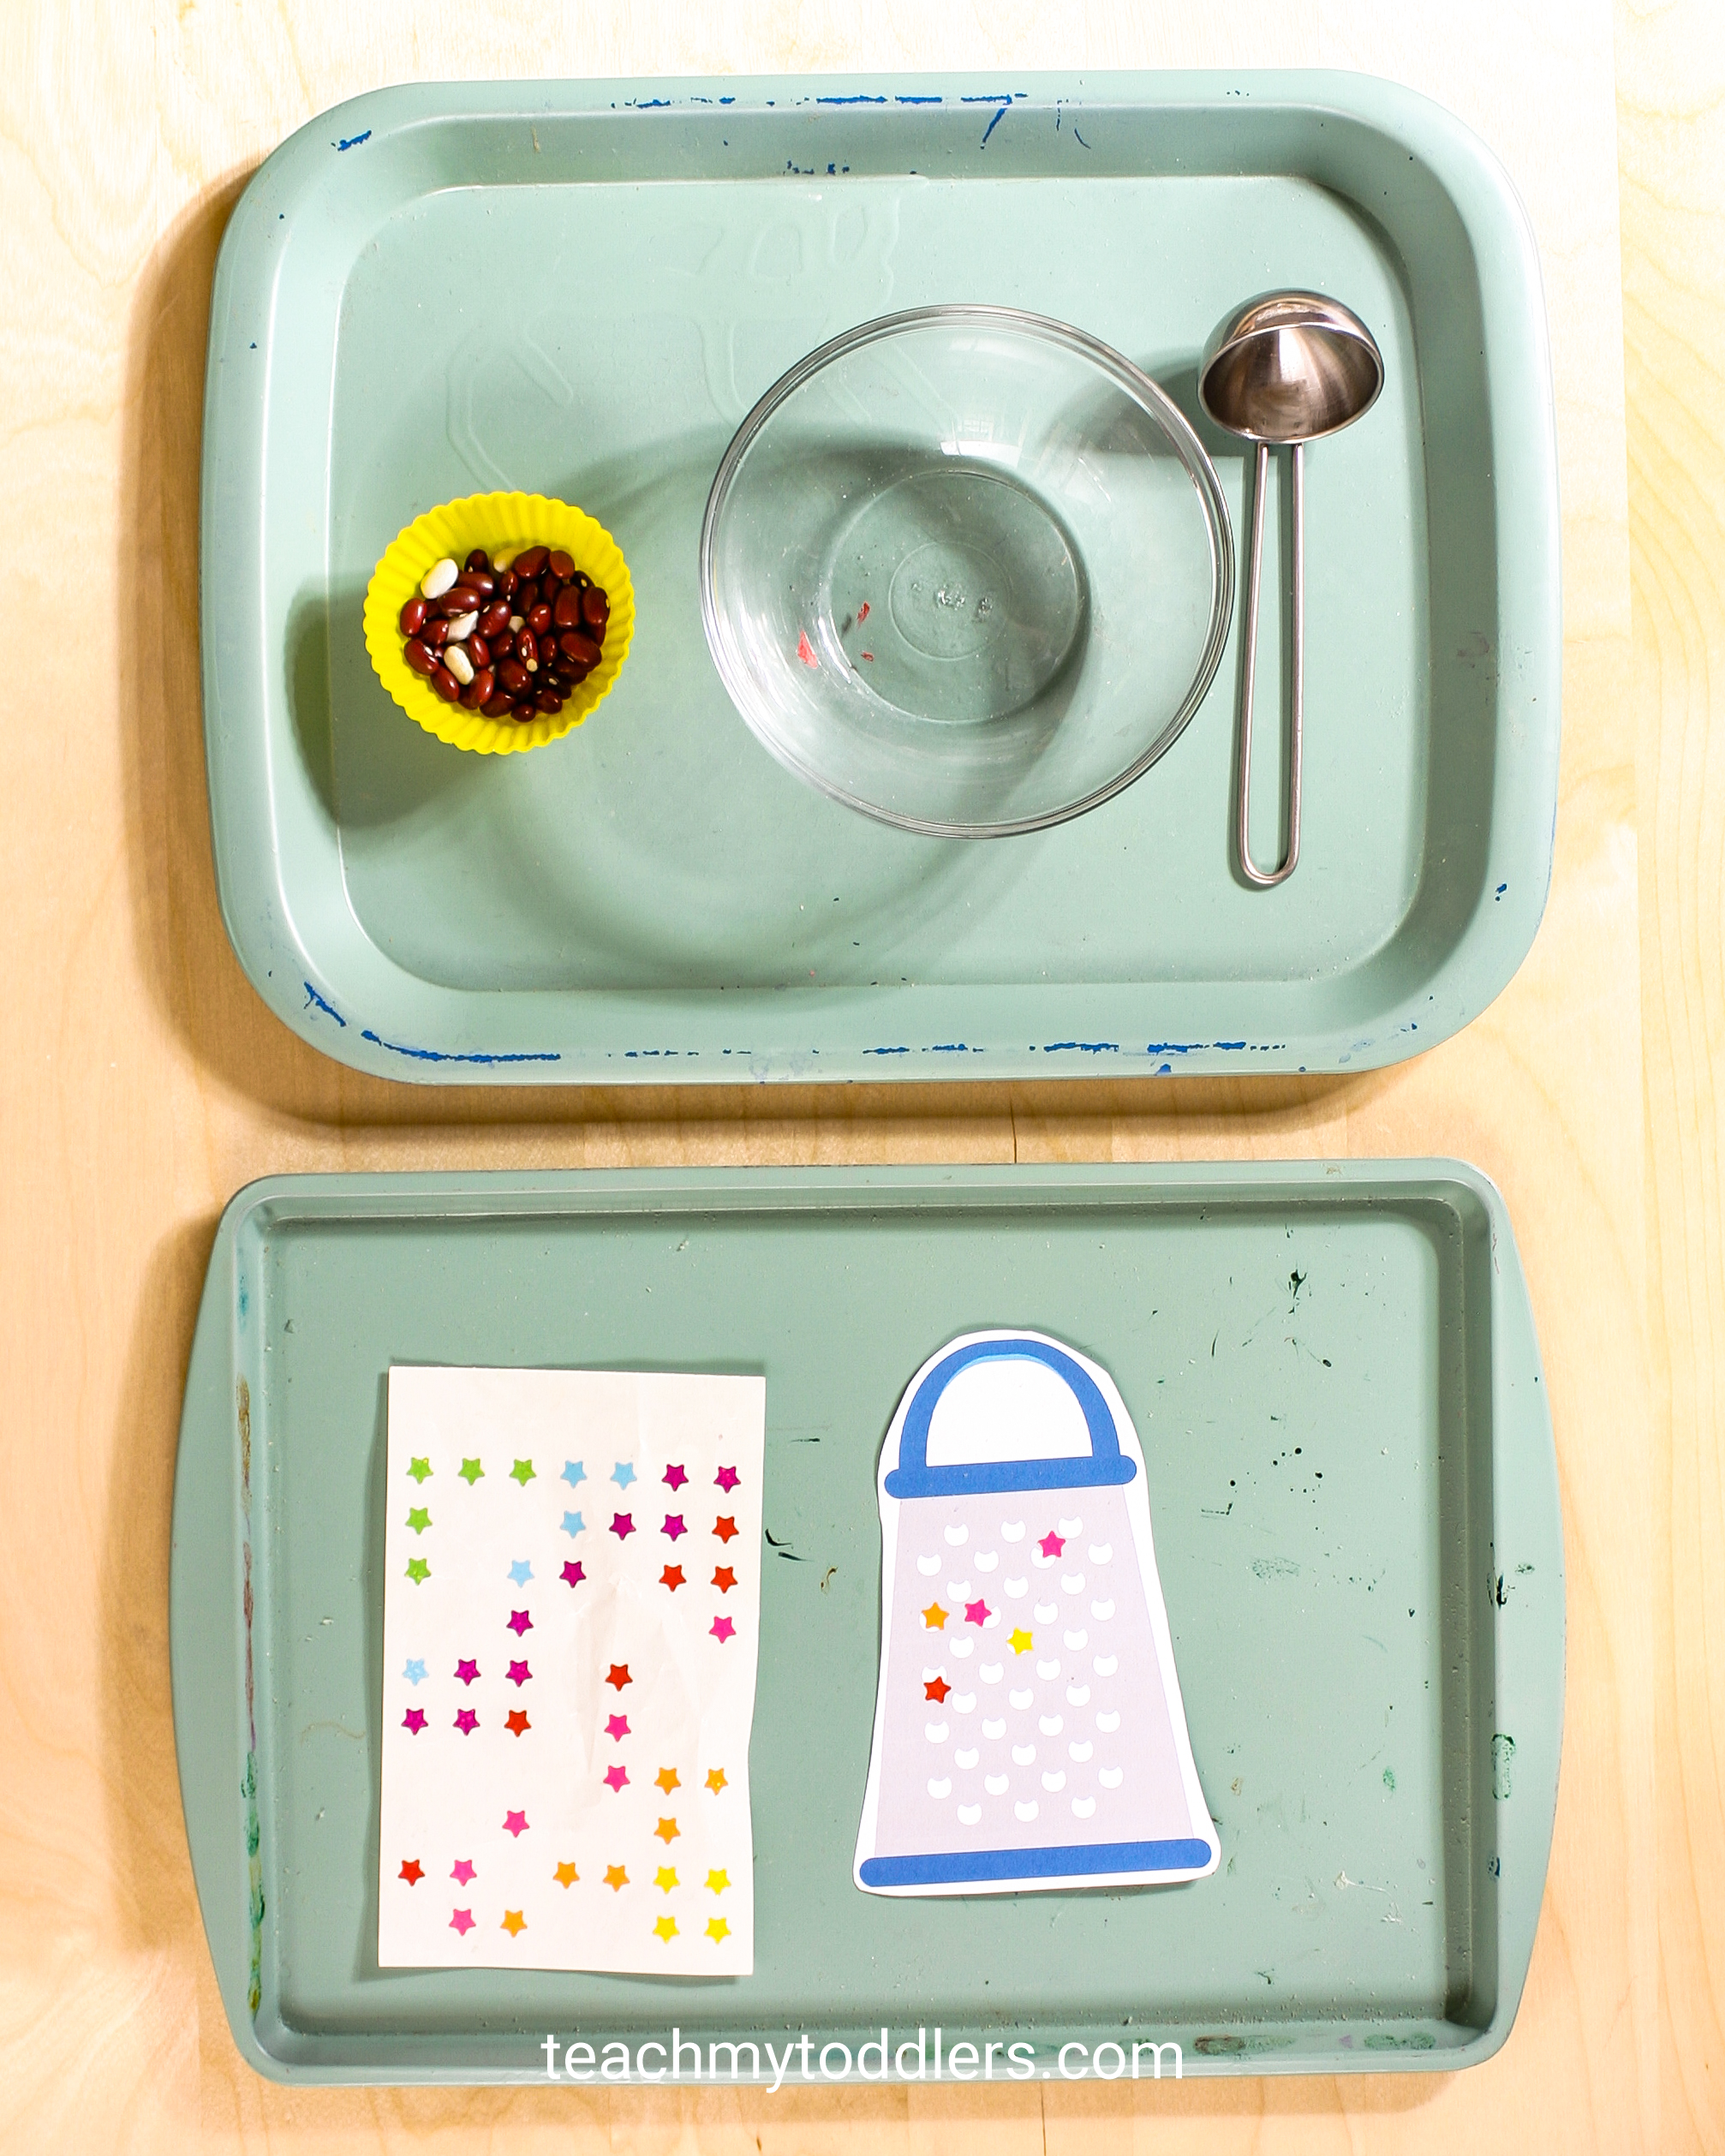 Discover how to use these kitchen activities to teach your toddlers the letter k